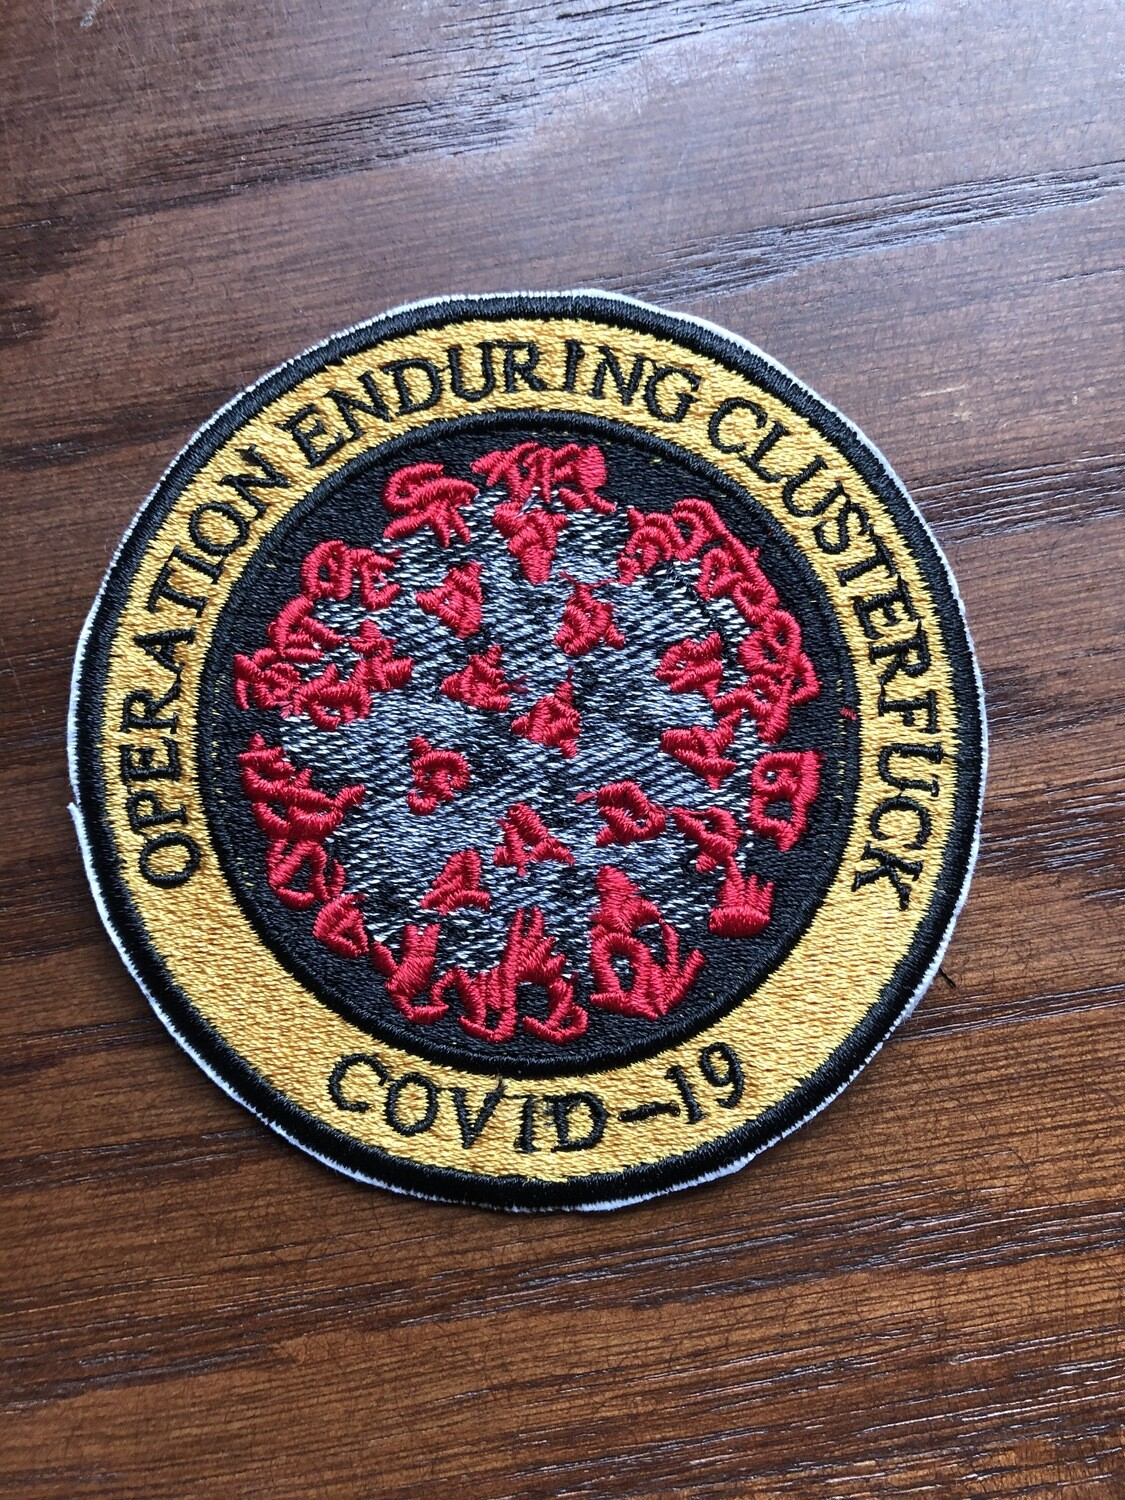 Covid patch